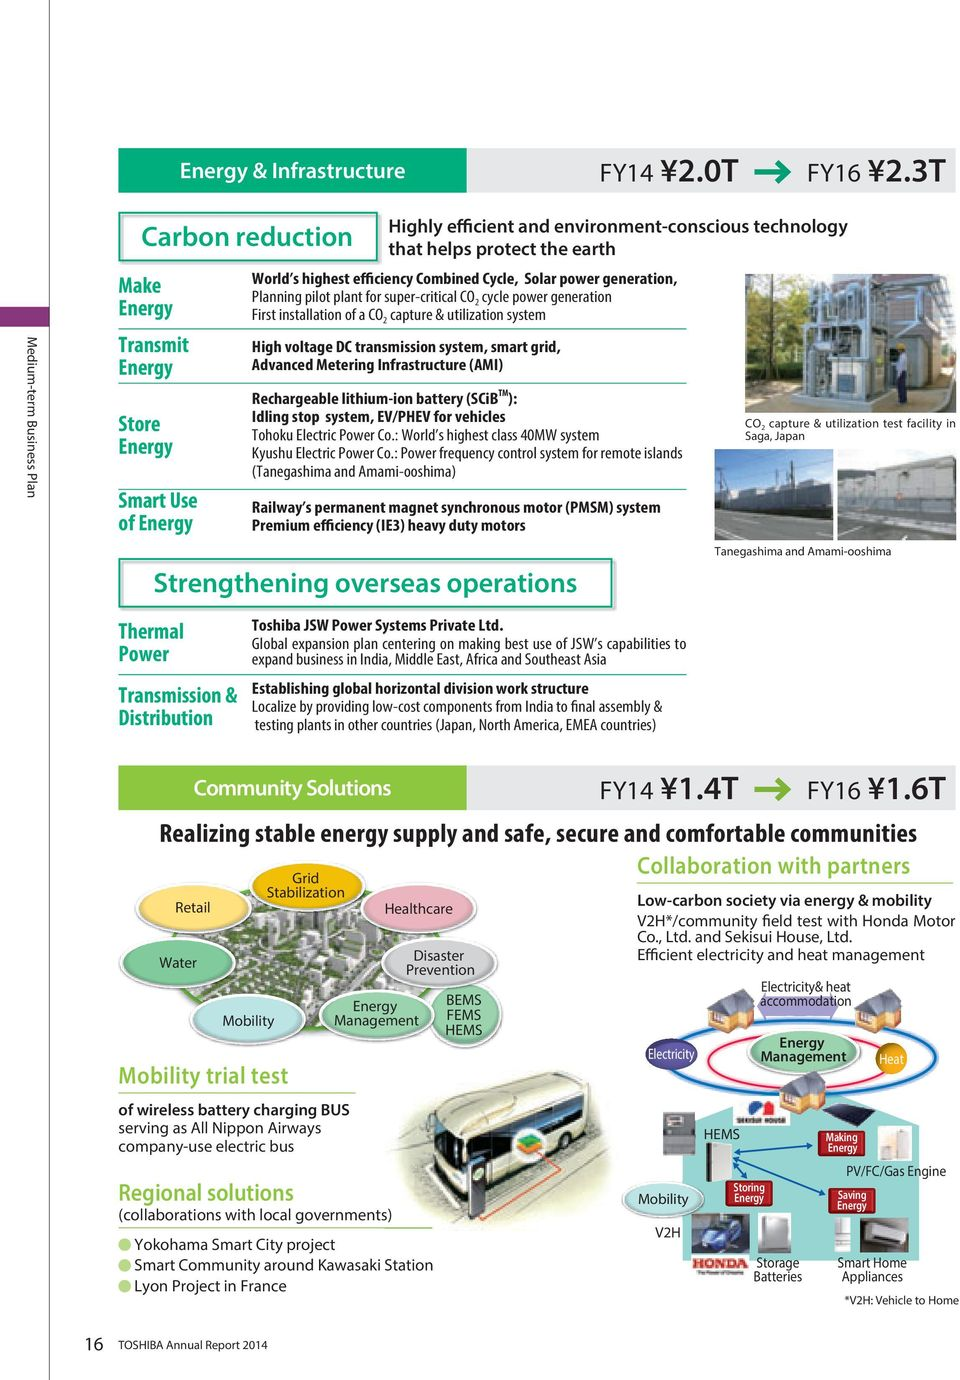 super-critical CO 2 cycle power generation First installation of a CO 2 capture & utilization system High voltage DC transmission system, smart grid, Advanced Metering Infrastructure (AMI)